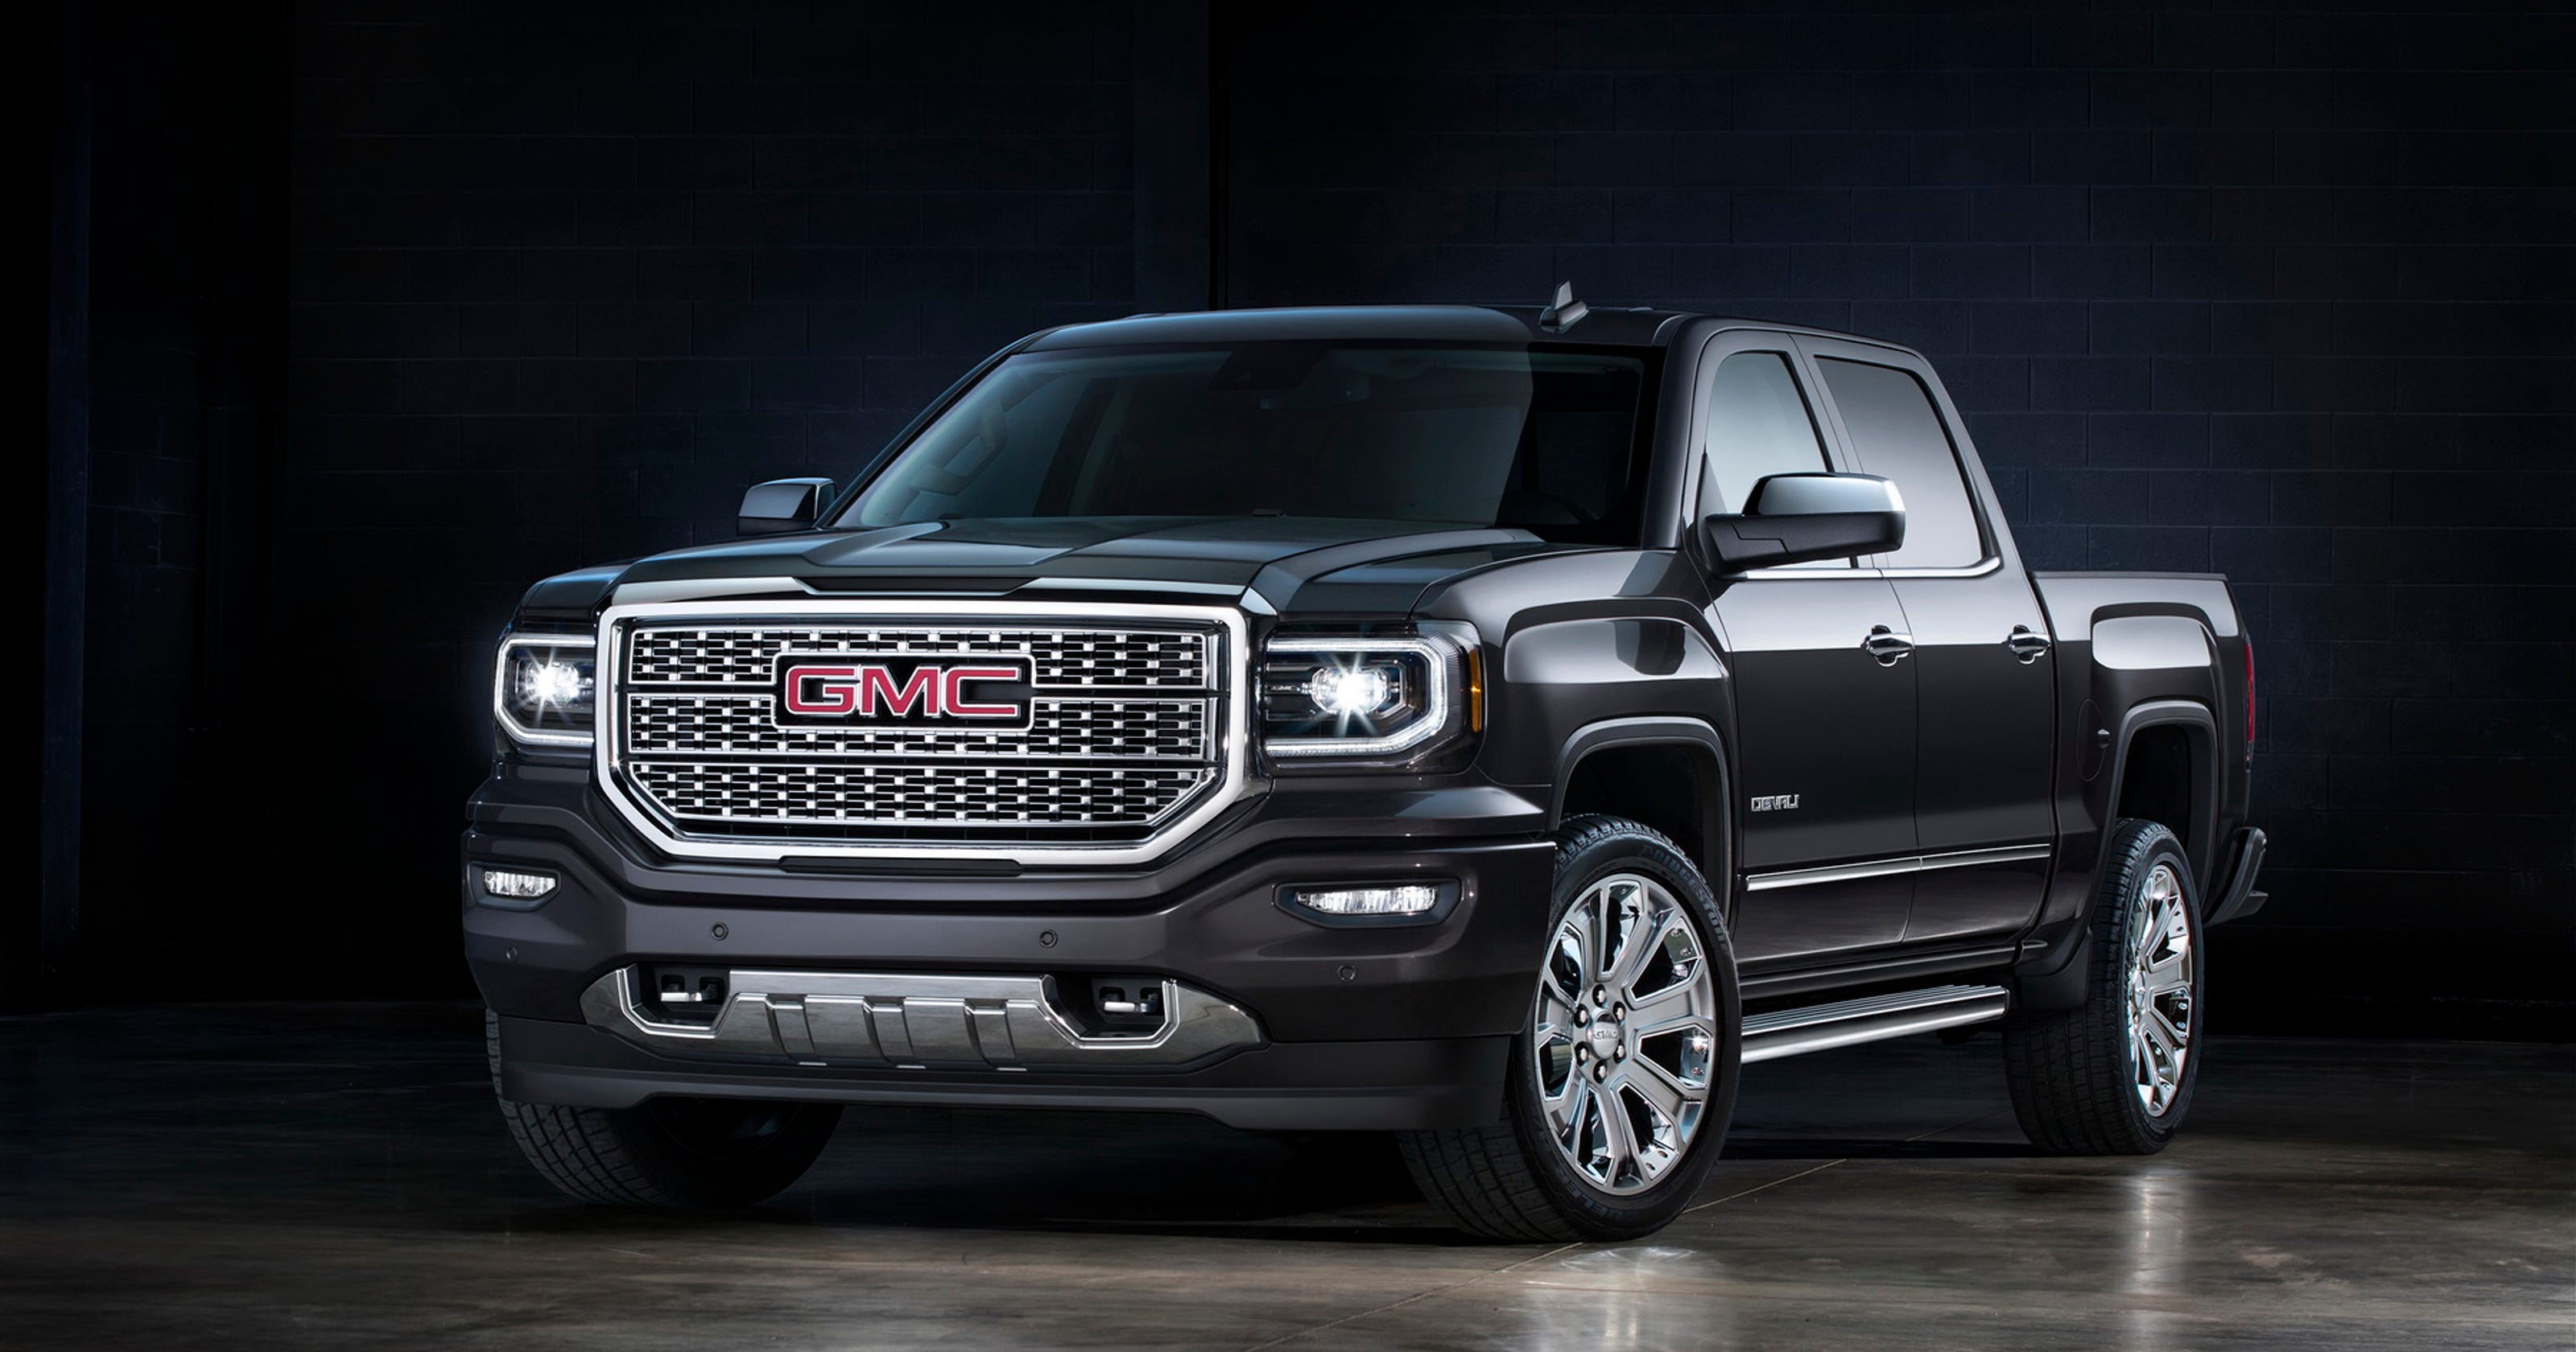 2017 Gmc Sierra Denali 1500 Pickup Performs Like A Pro